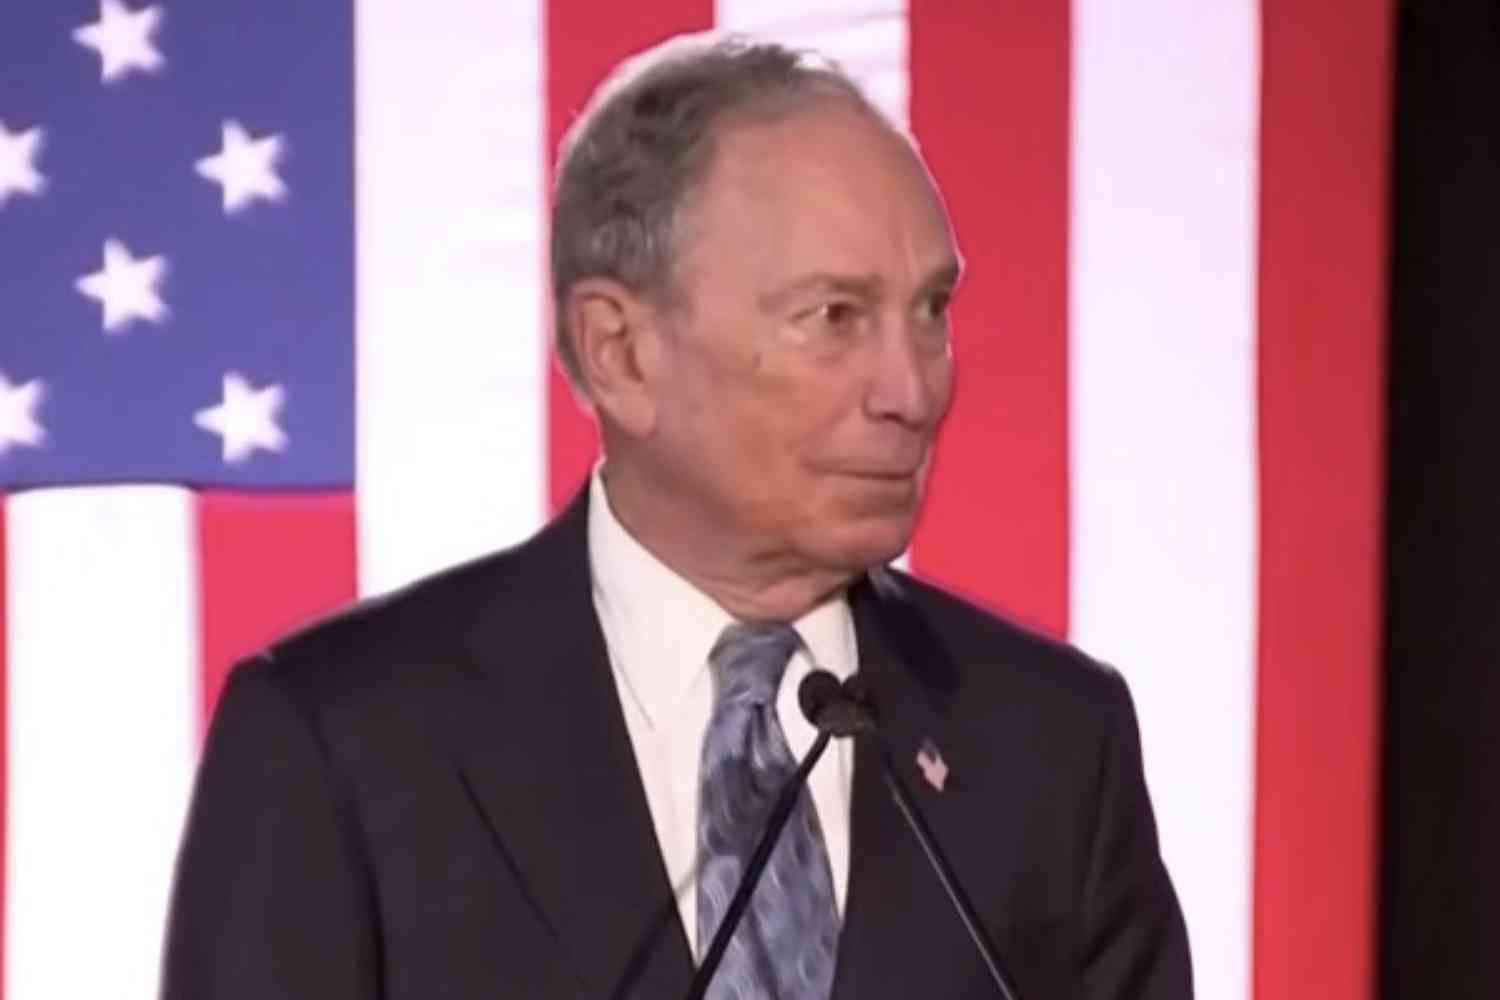 Bloomberg slammed by Republicans, Democrats after condescending remarks about farmers